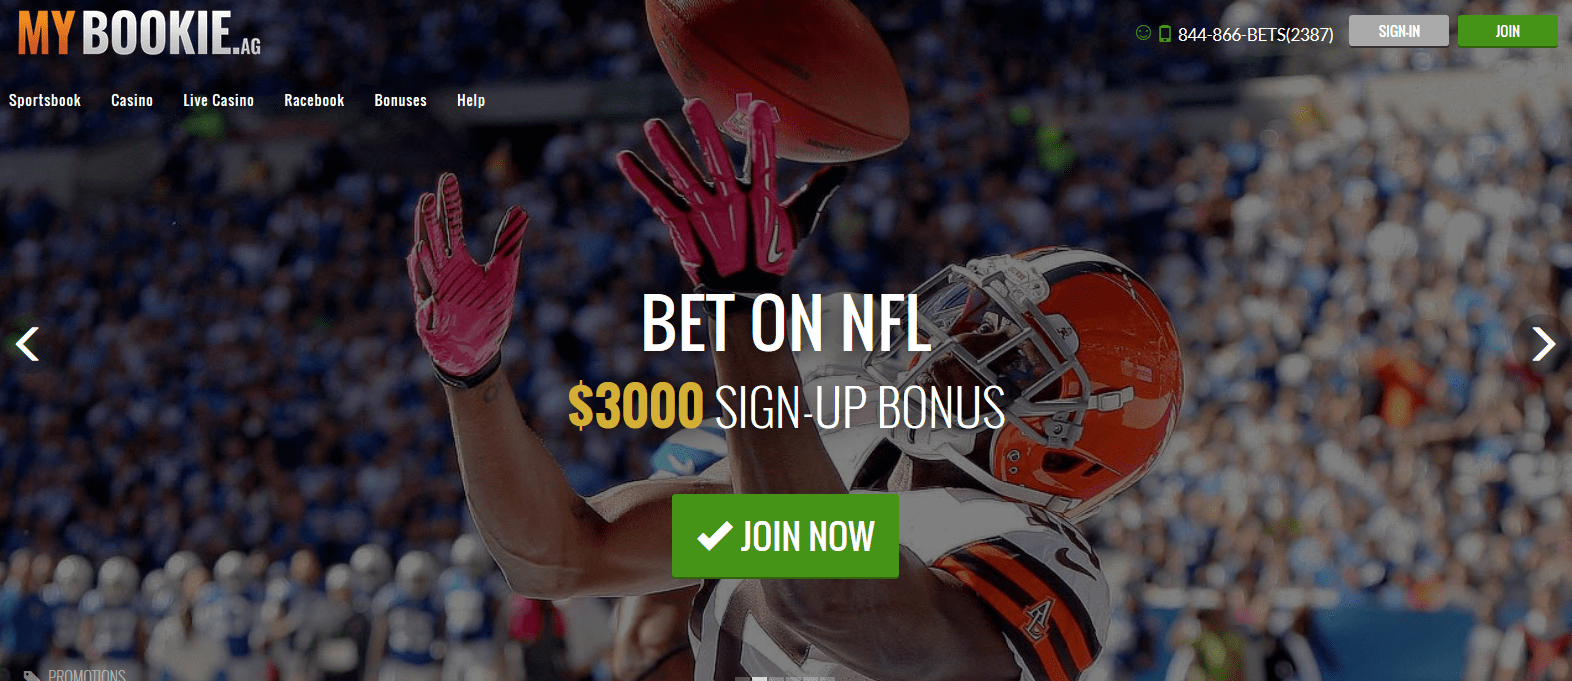 Online gambling super bowl tijuana casino